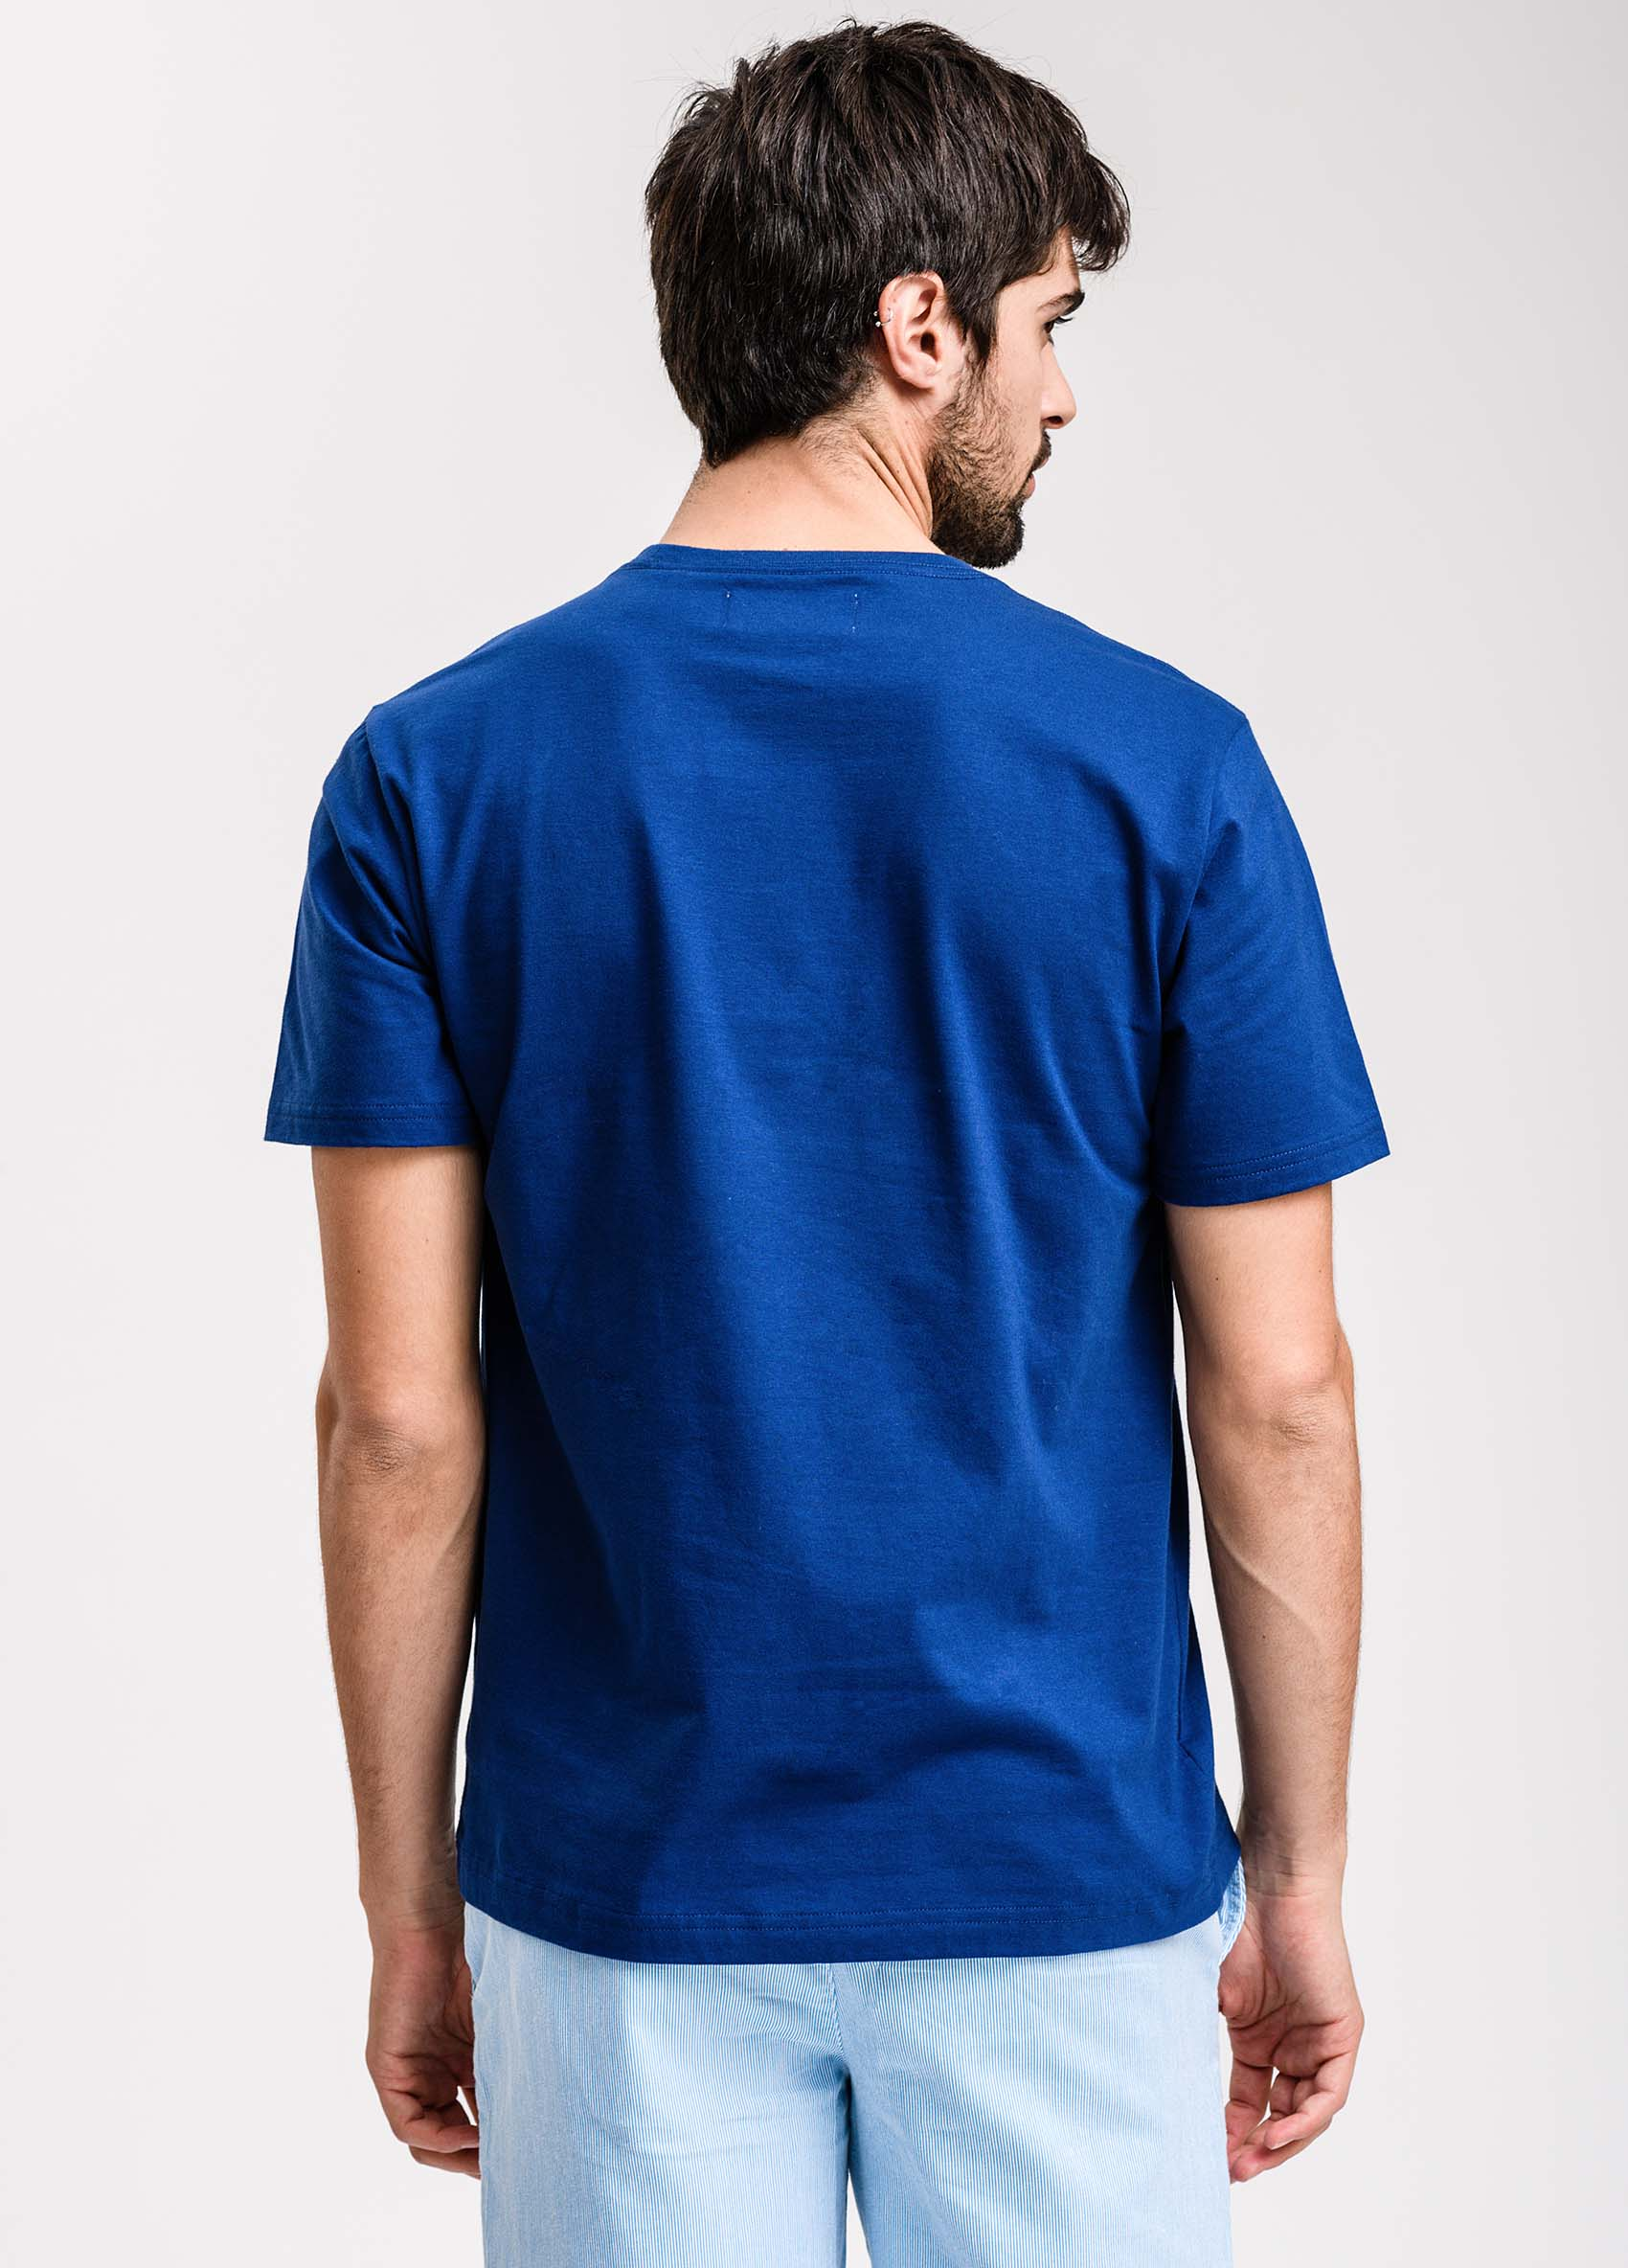 penguin_remera-basic-tee_29-26-2018__picture-2589